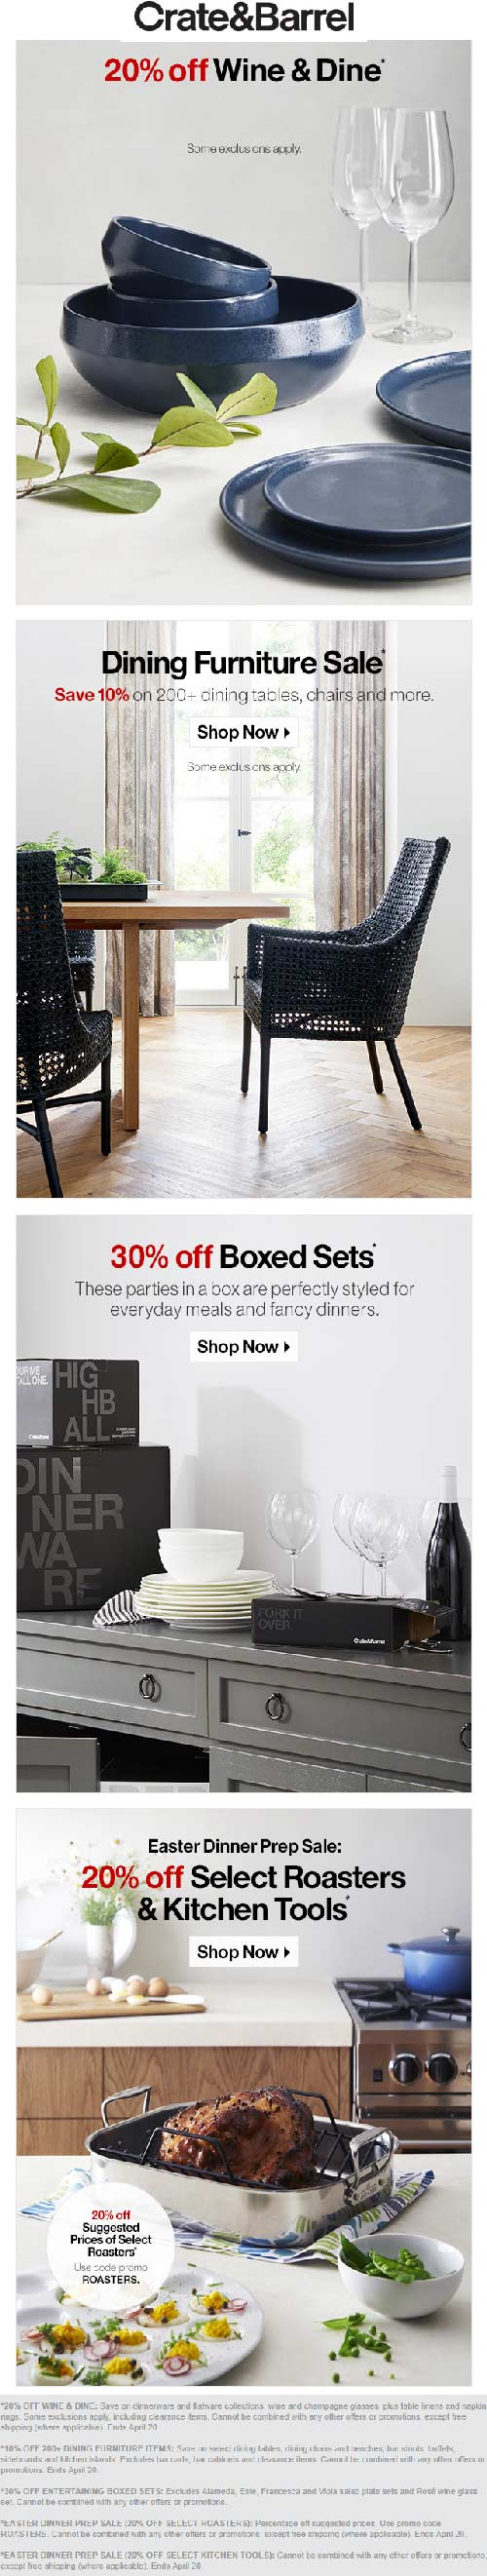 Crate & Barrel Coupon July 2019 20% off dinnerware & more at Crate & Barrel, ditto online